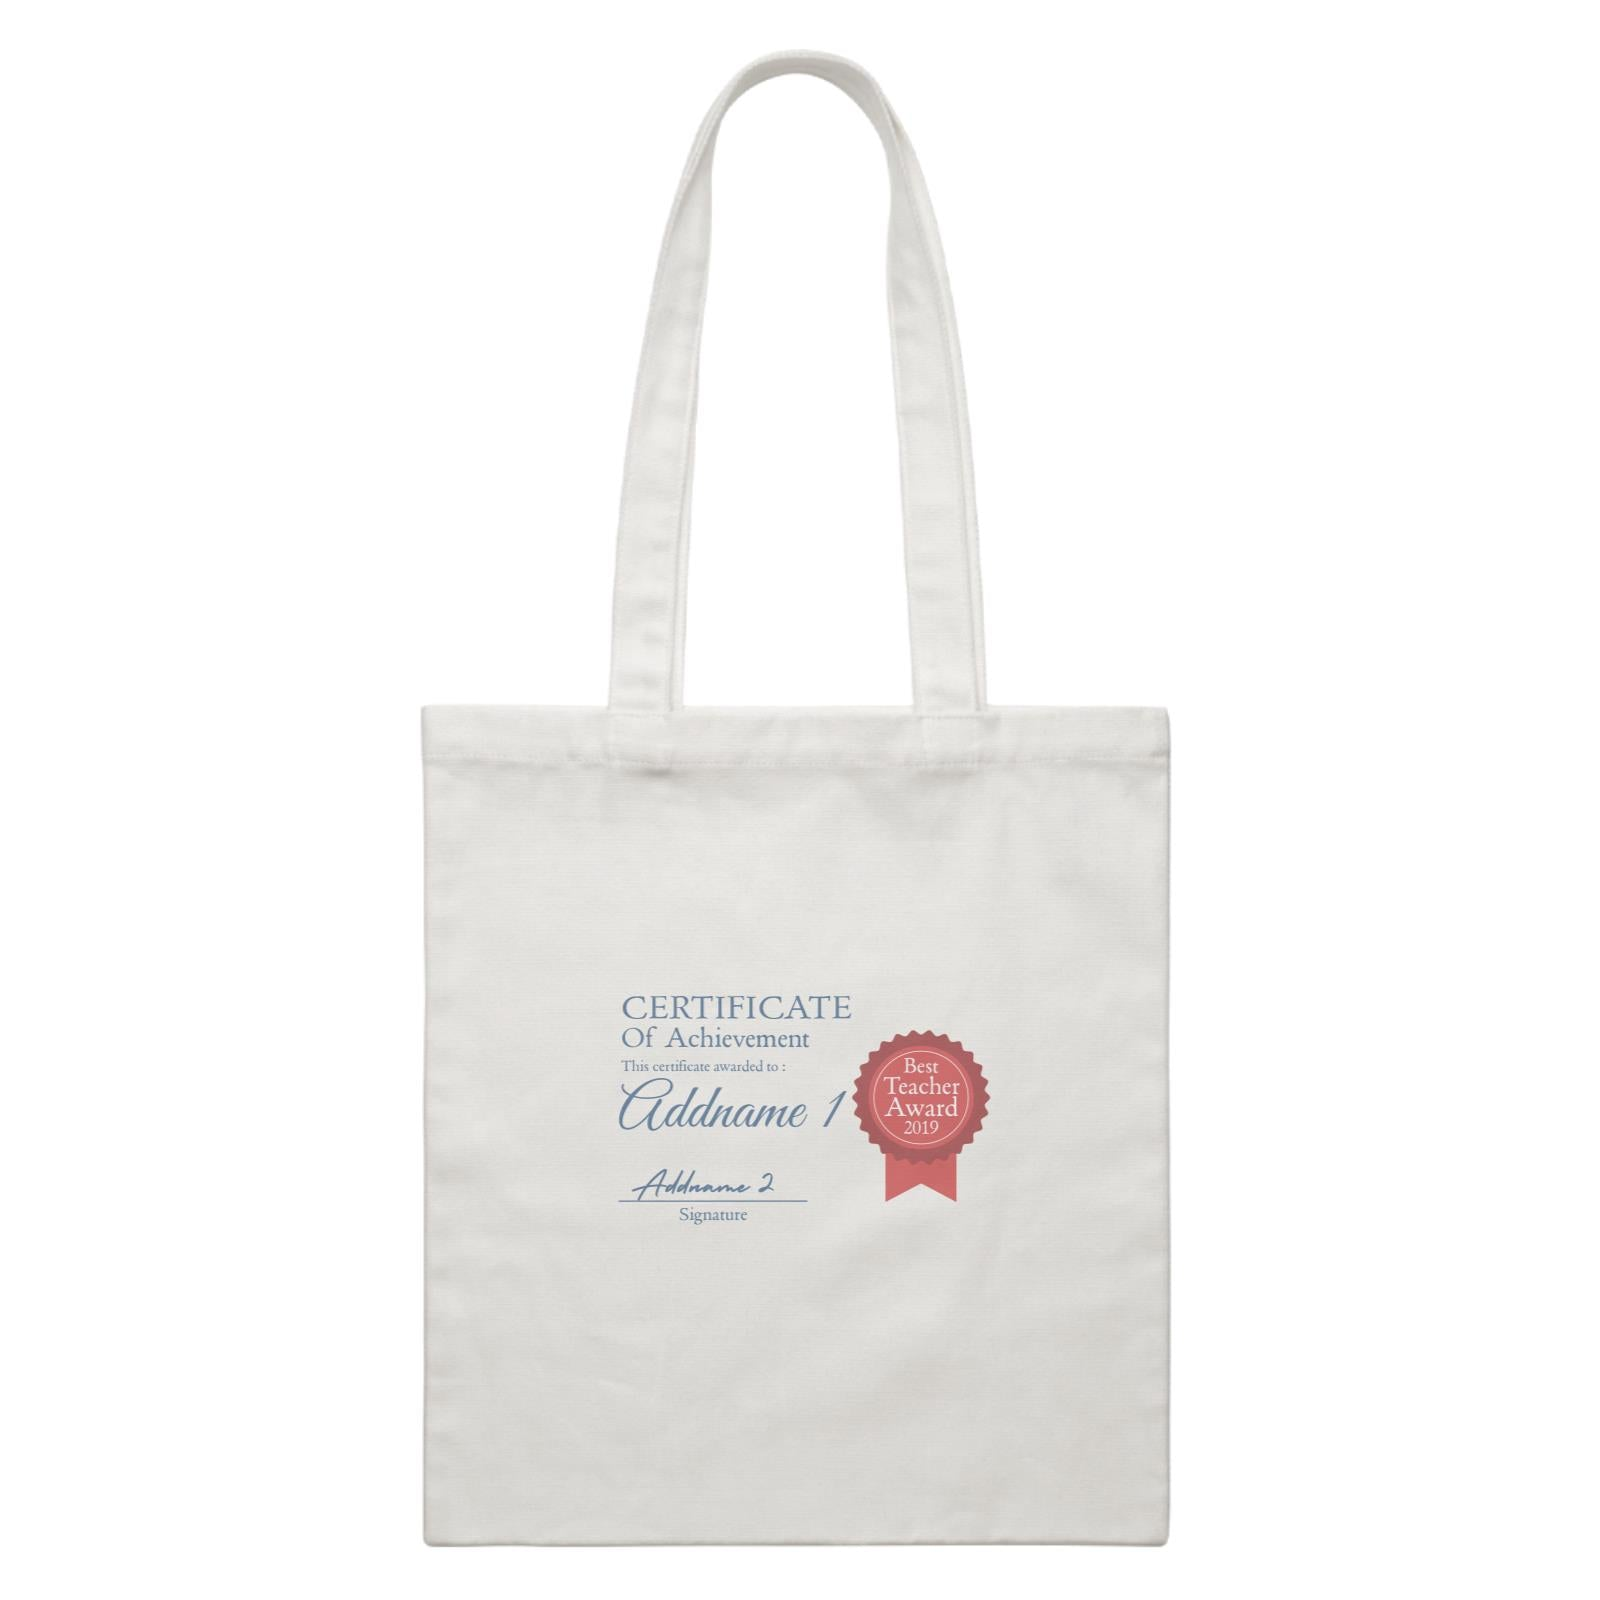 Teacher Certificate Best Teacher Award 2019 Addname 1 & Addname 2 White Canvas Bag